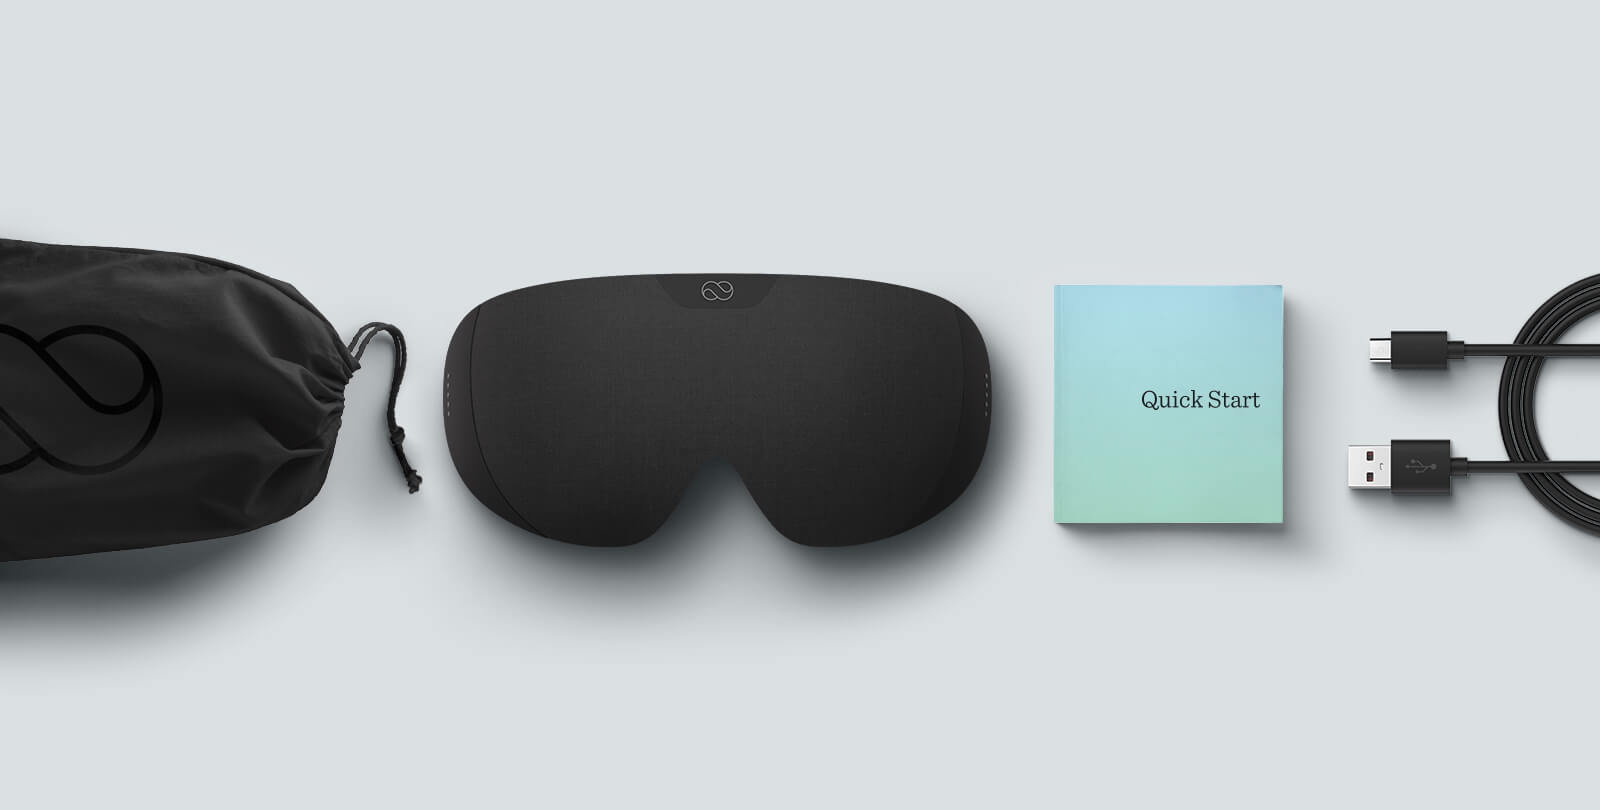 Lumos Tech Smart Sleep Mask and included accessories